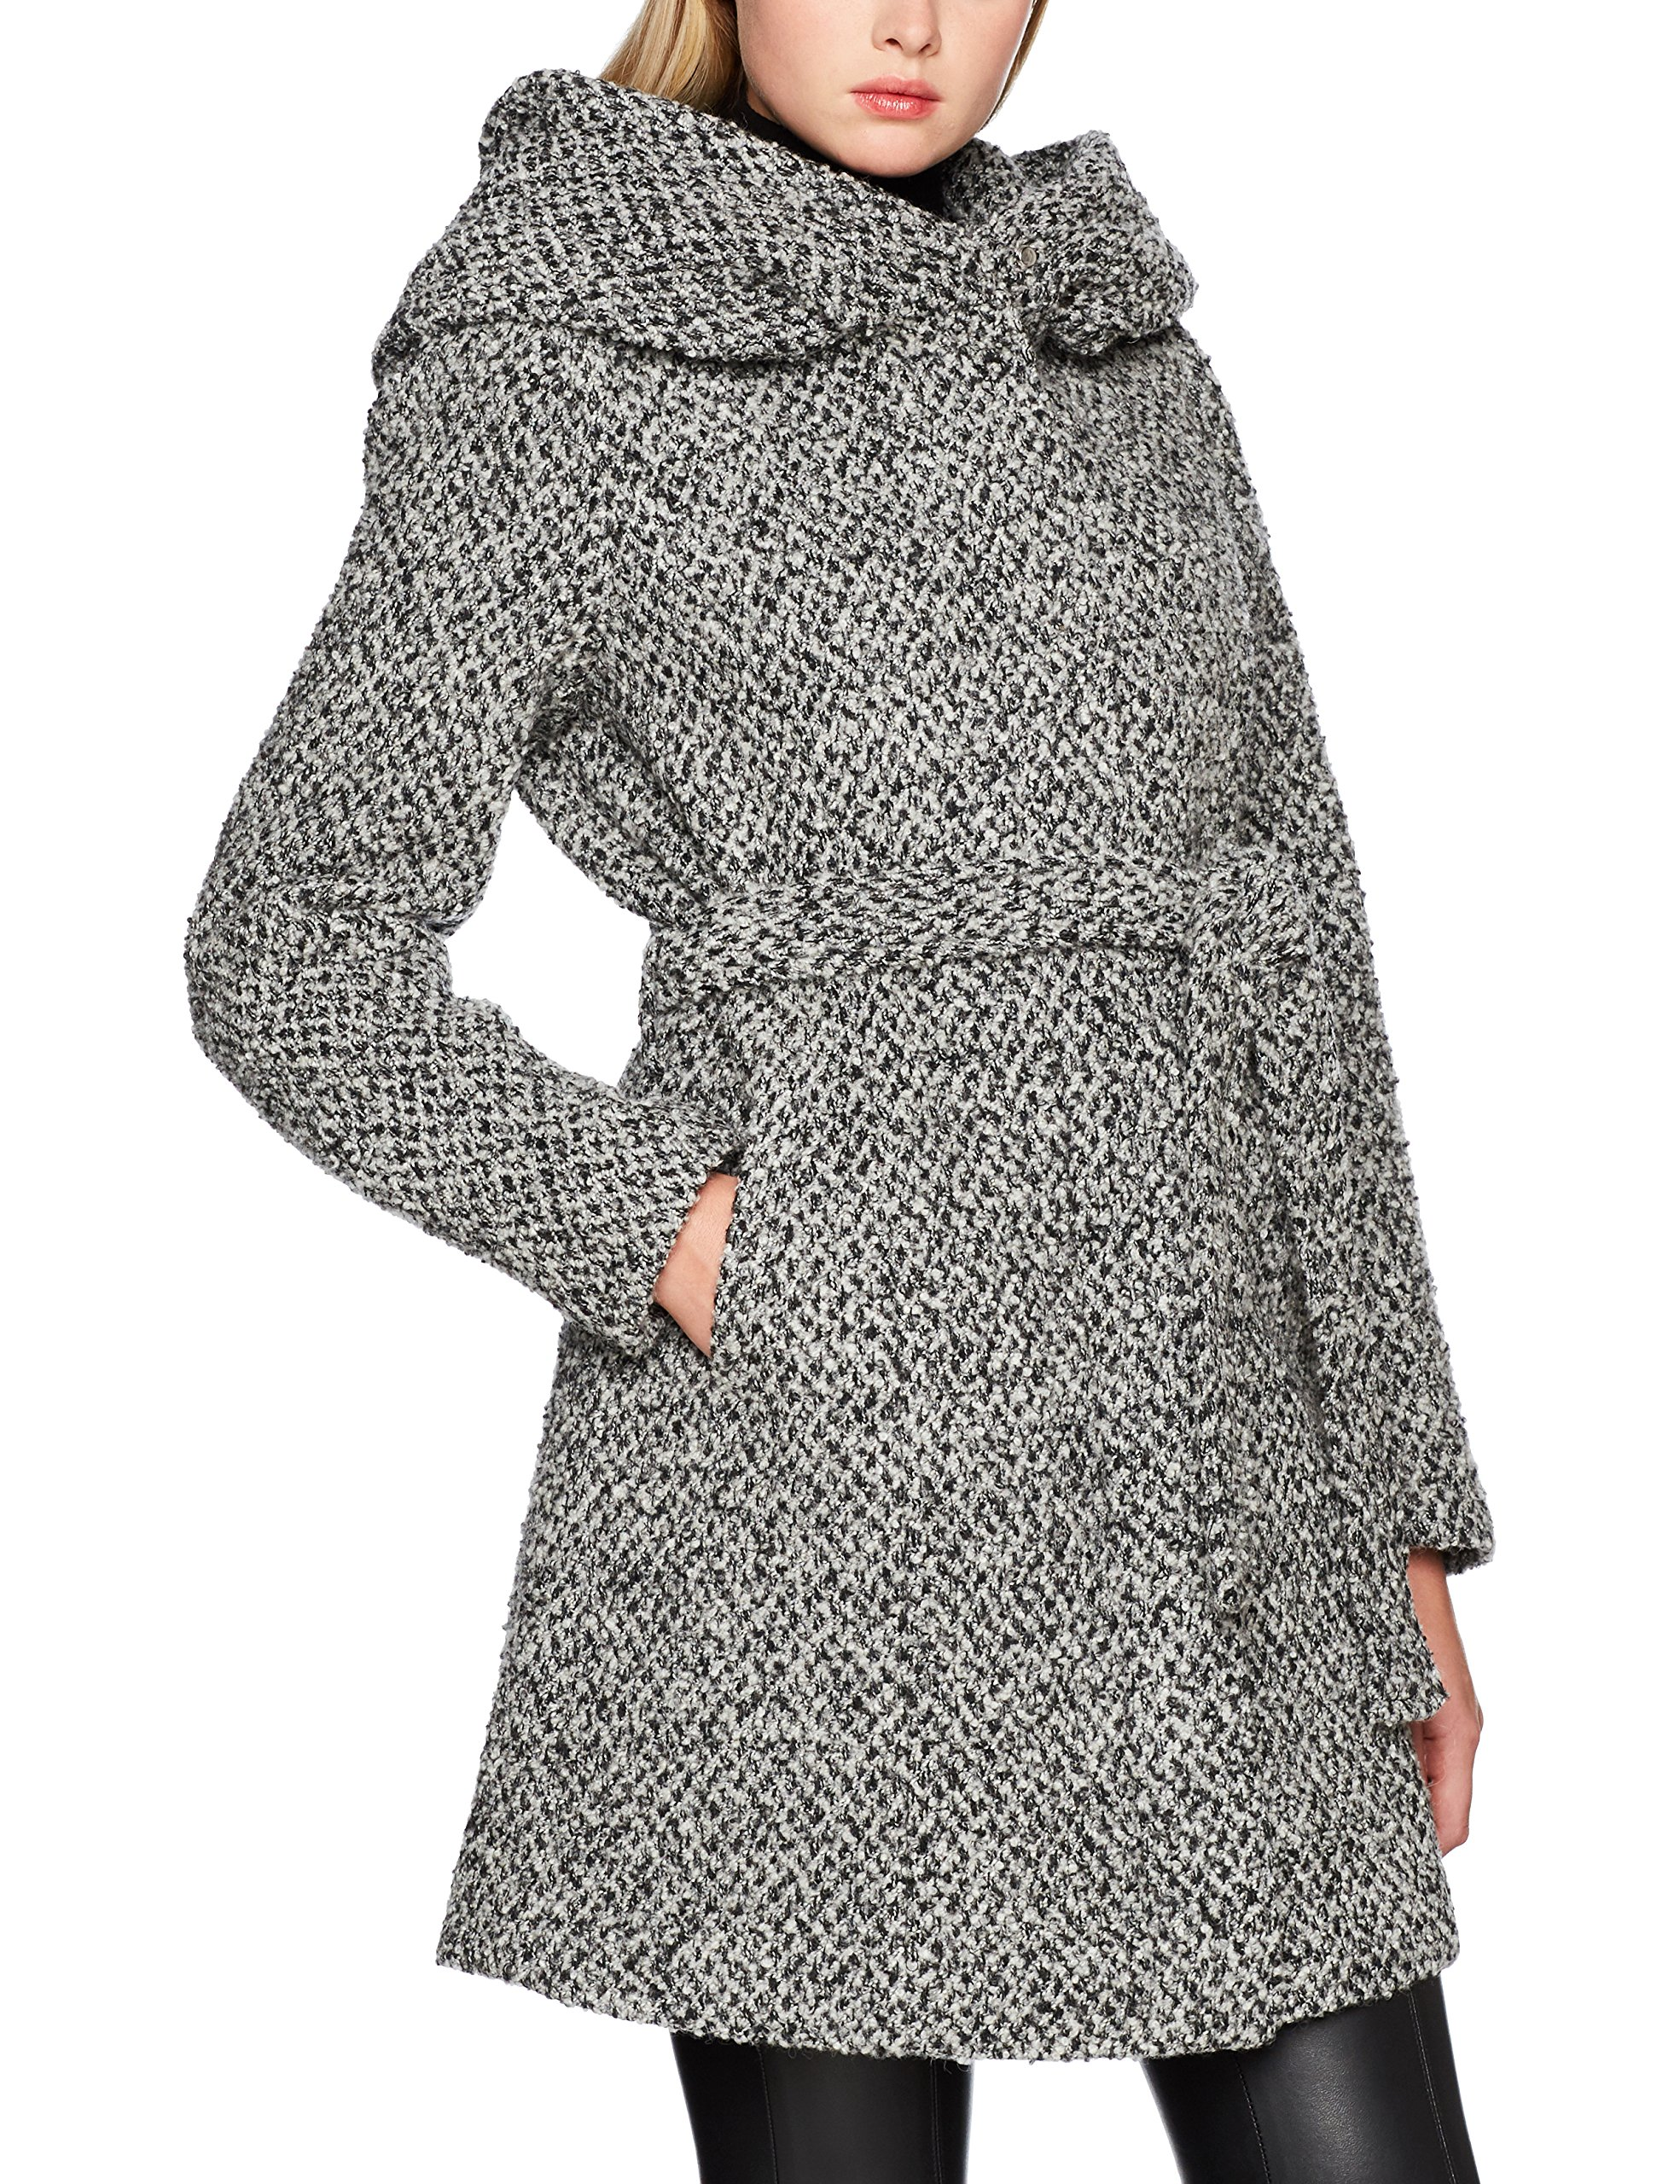 Vicama Wool Detail FabricantMediumFemme ManteauGrislight New Melange Vila noos Coat Grey black38taille Clothes 9IWYDEH2